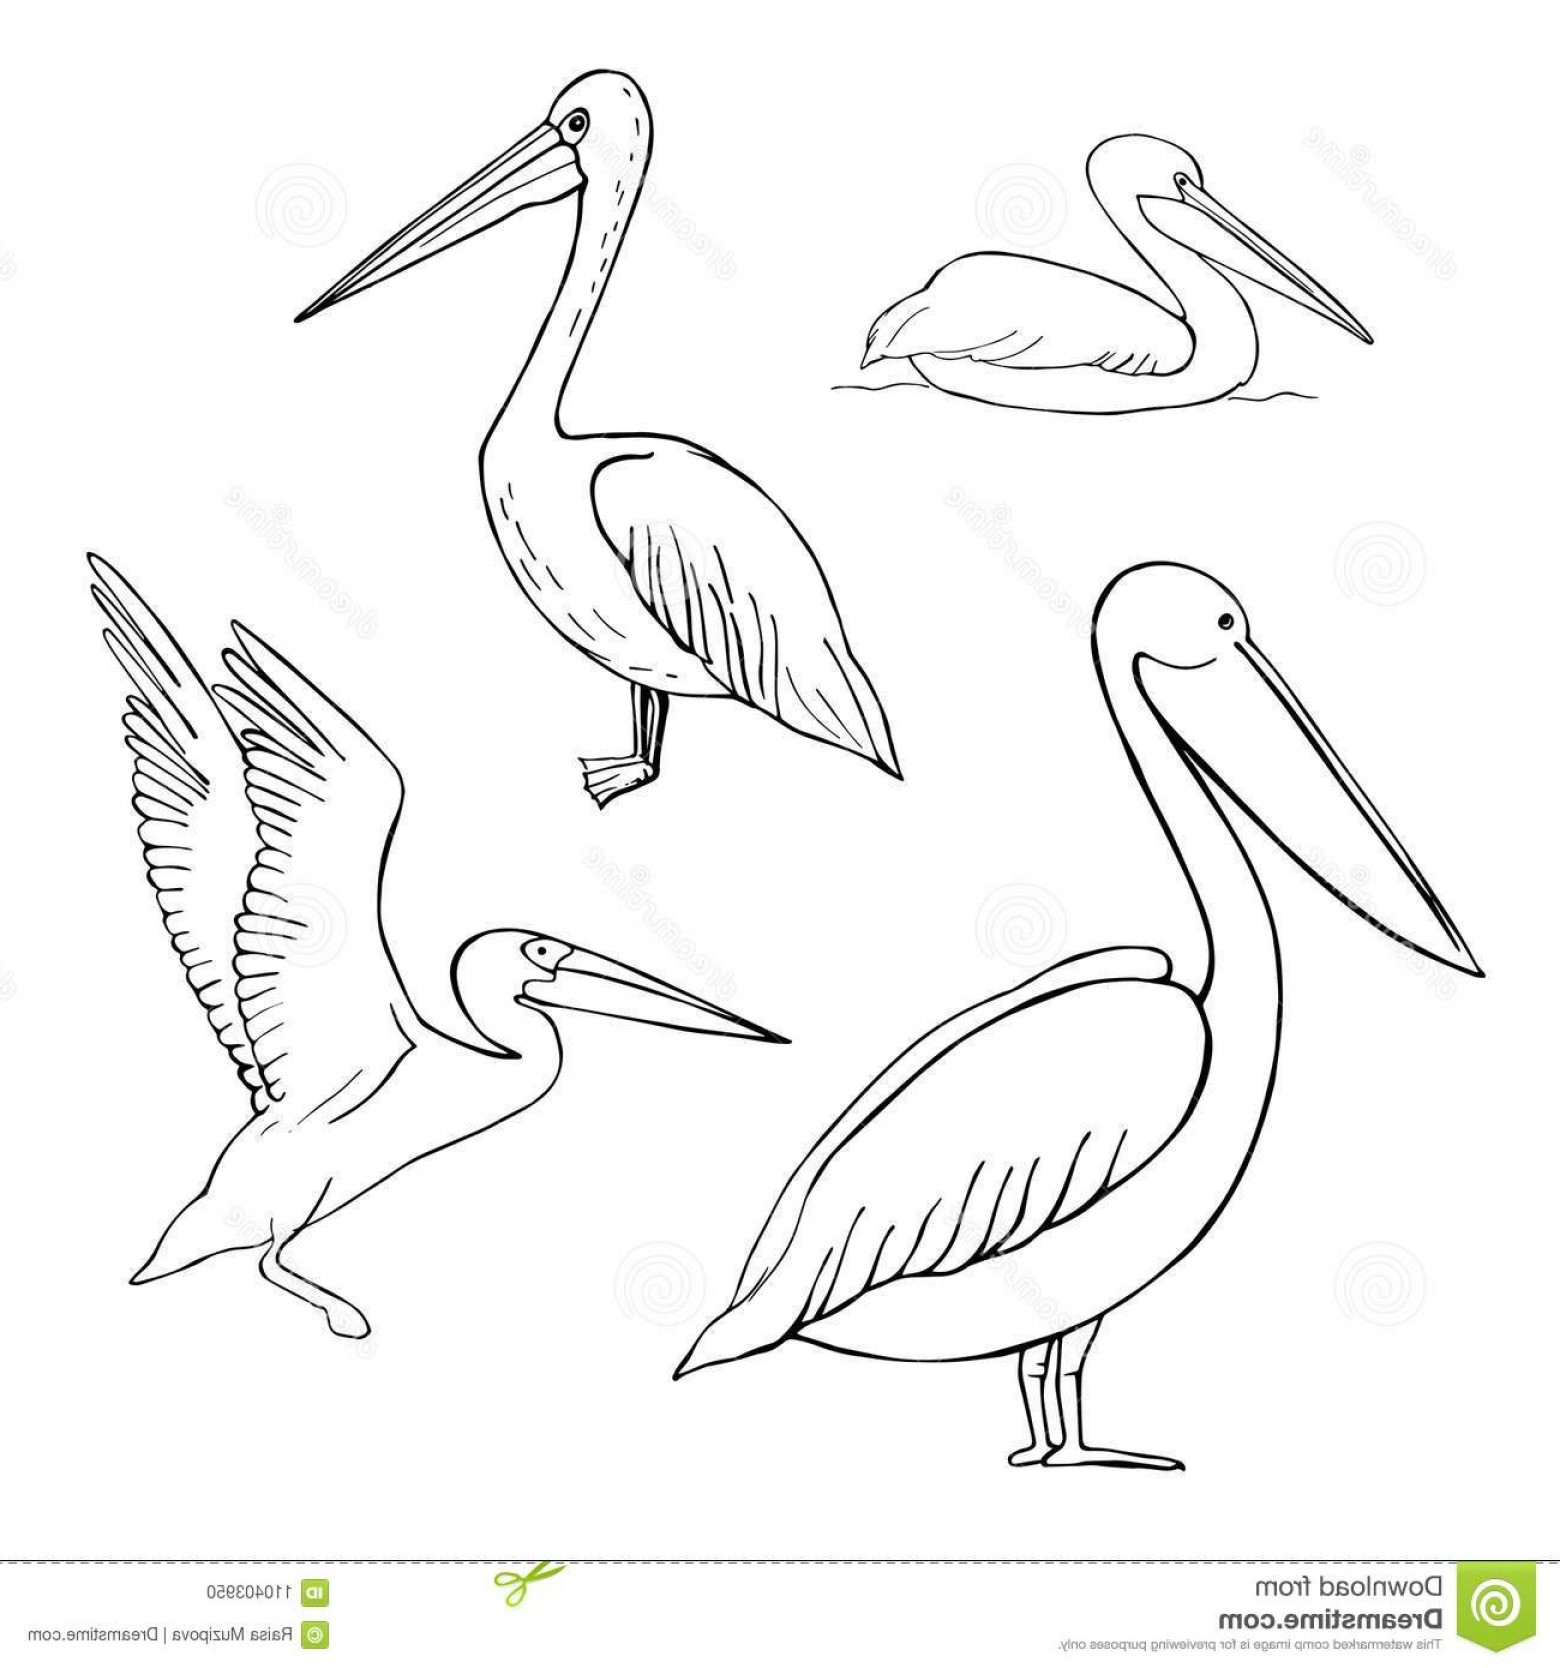 Pelican Vector Wings: Hand Drawn Pelican Line Drawing White Background Vector Sketch Illustration Image